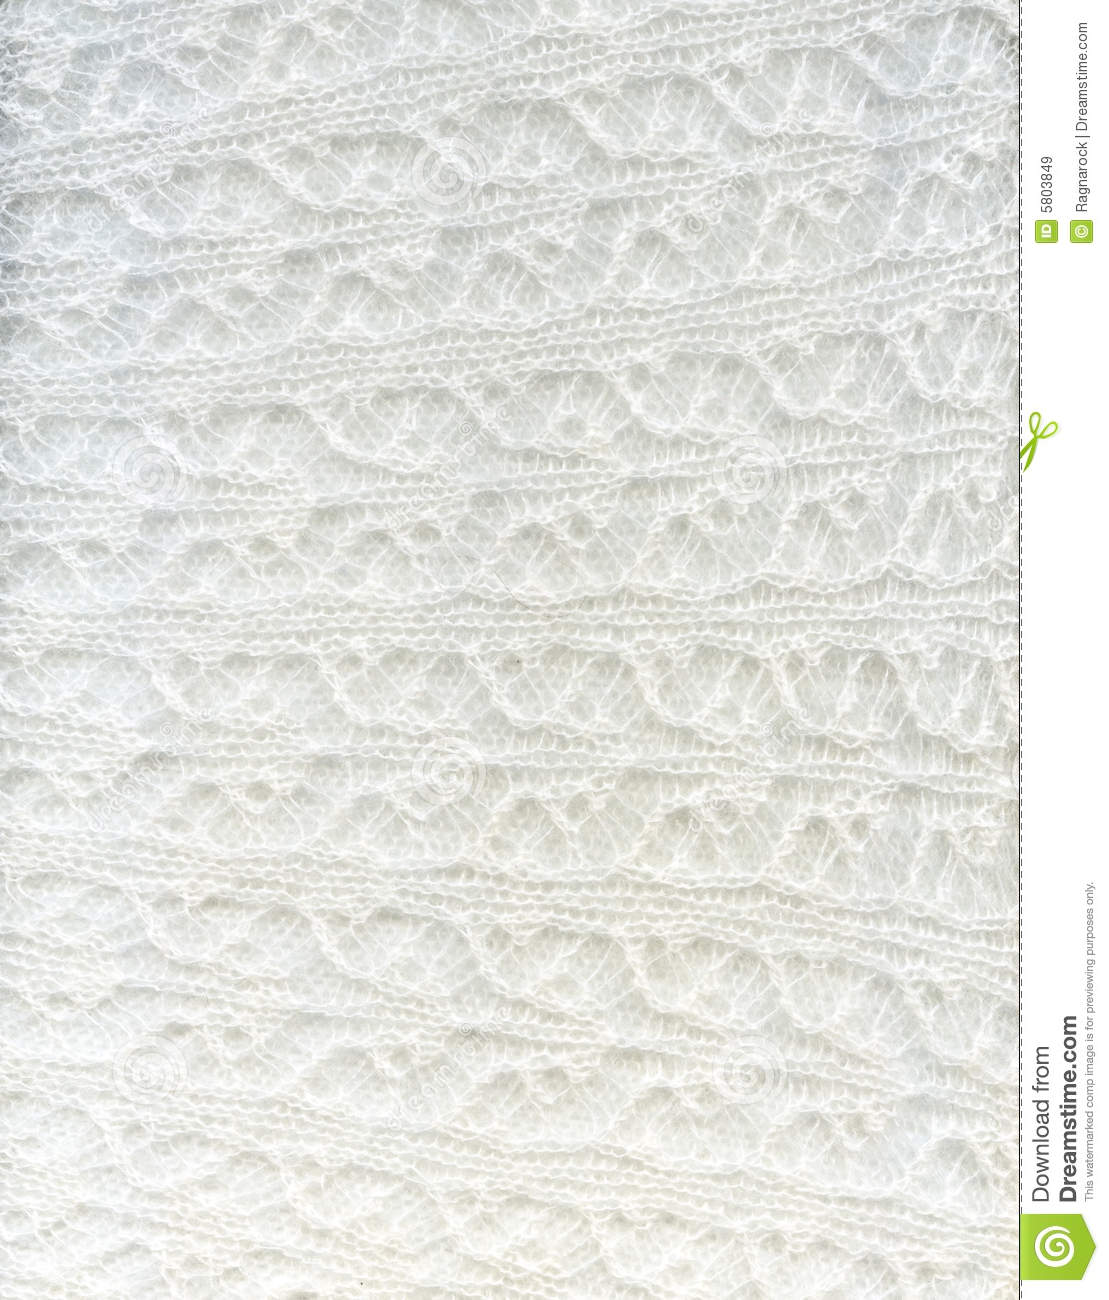 Wool White Fabric Textile Texture Royalty Free Stock